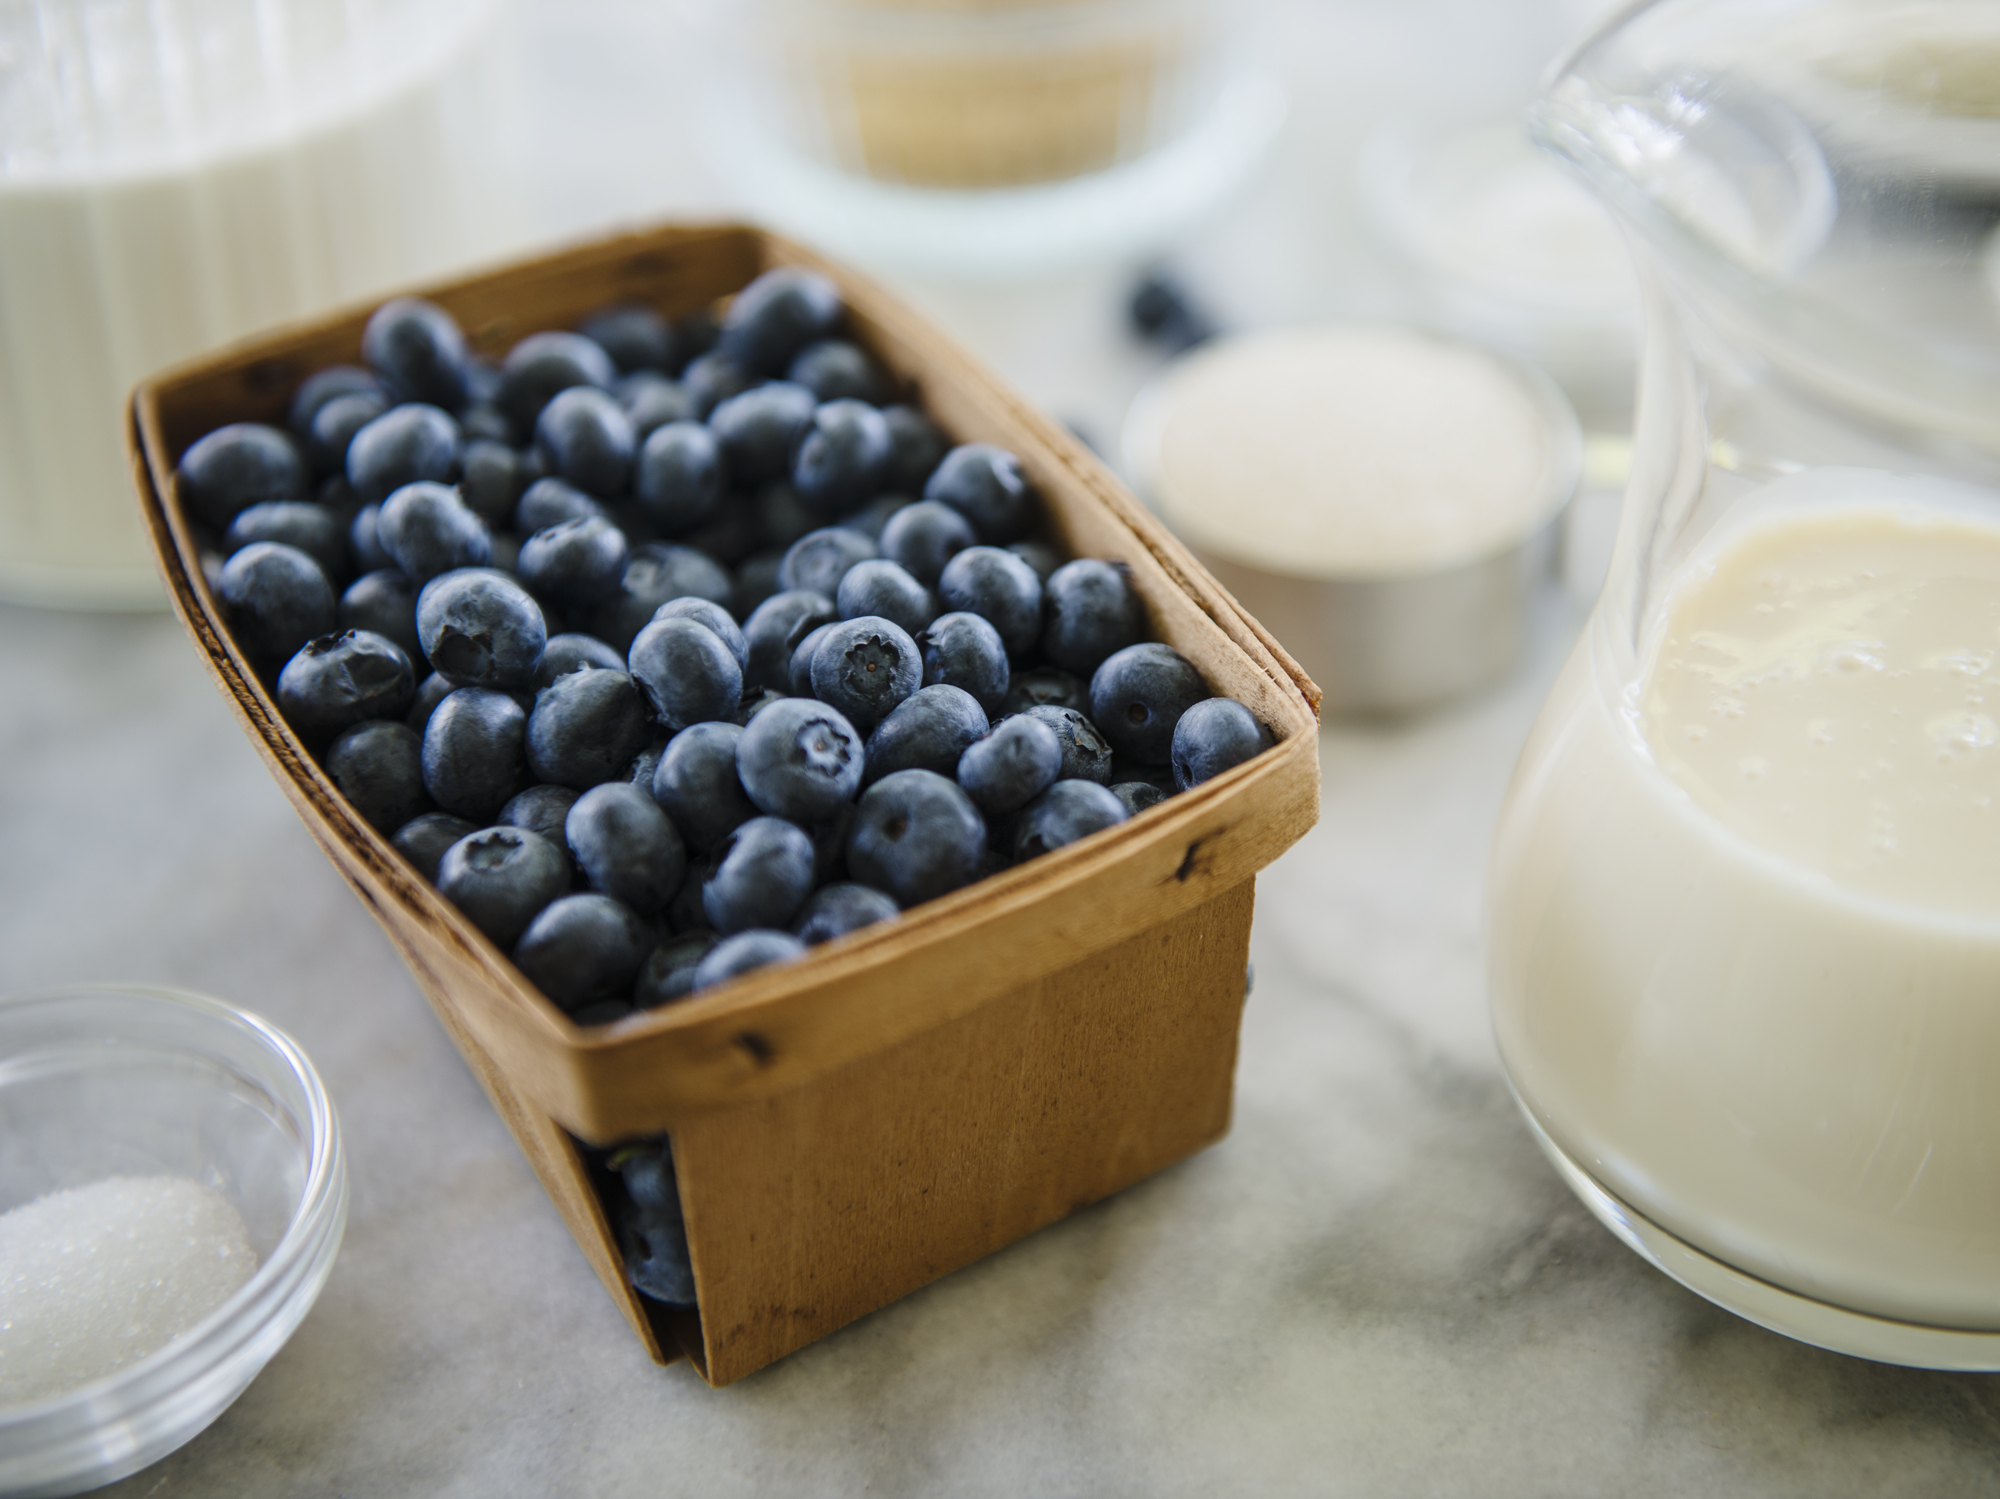 Choose blueberries that are small firm, plump, fragrant with a dark rich berry color and a dusty white bloom, which is their natural protection from the sun. You can also use frozen Wild Maine blueberries.